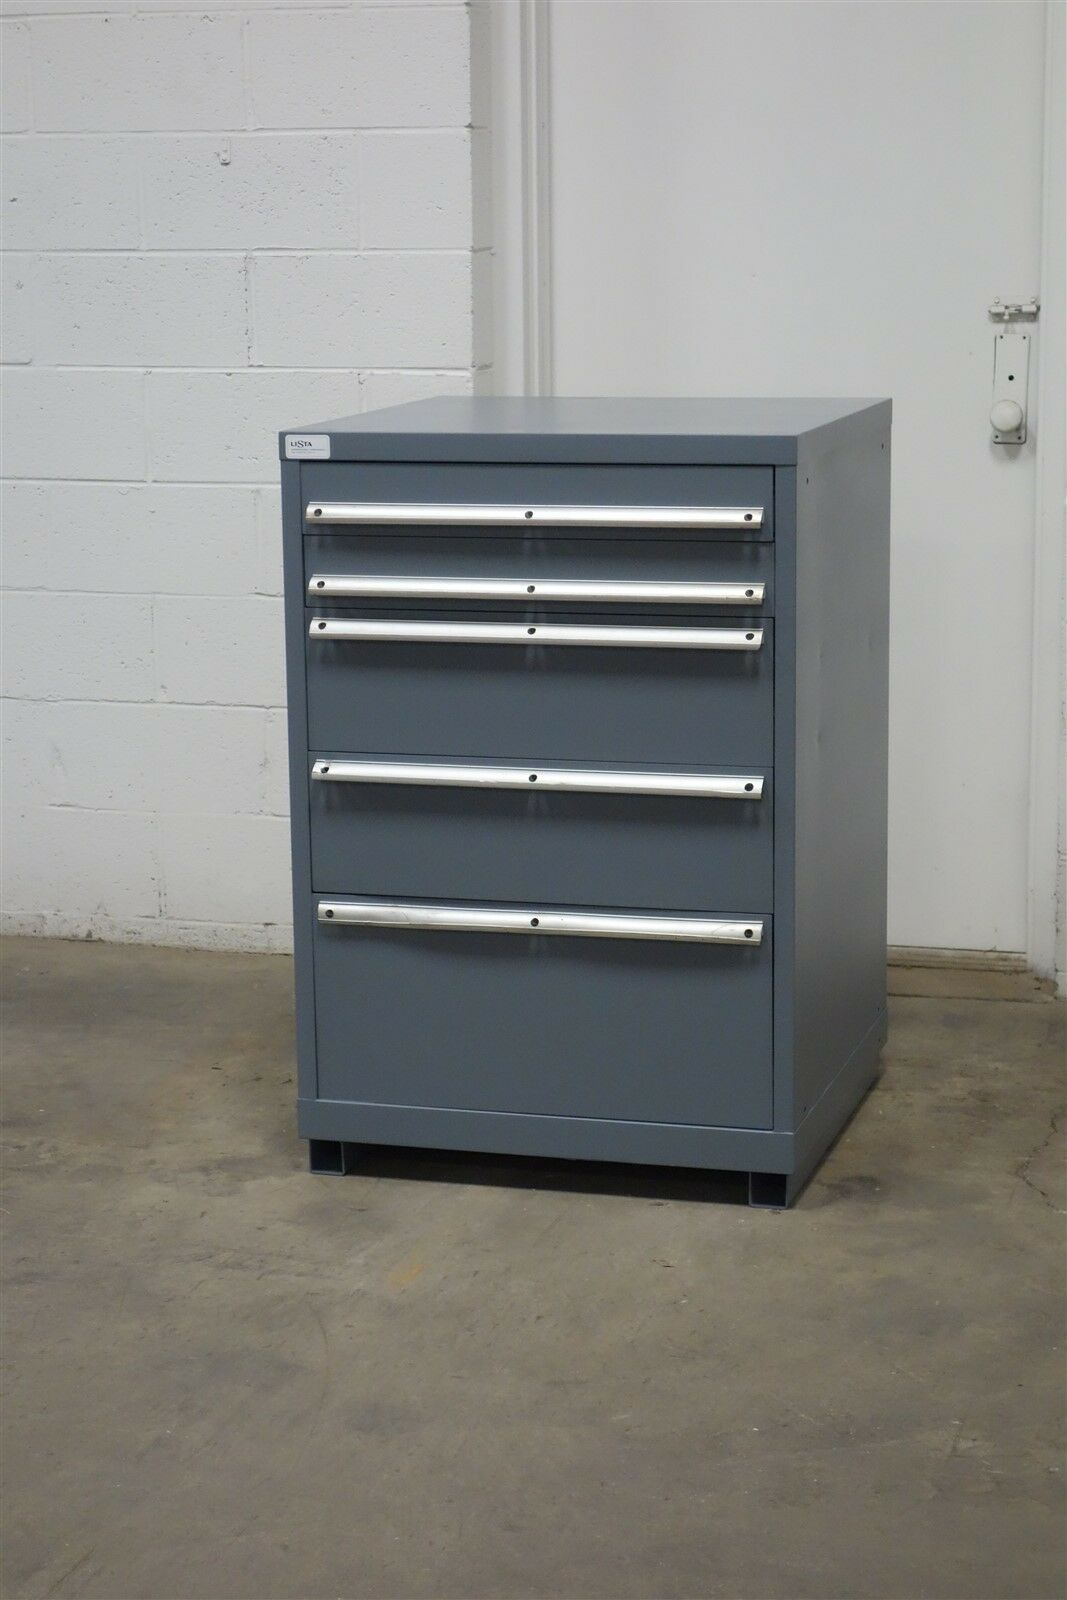 Used Lista 5 Drawer Cabinet 42 Inch Tall Industrial Tool